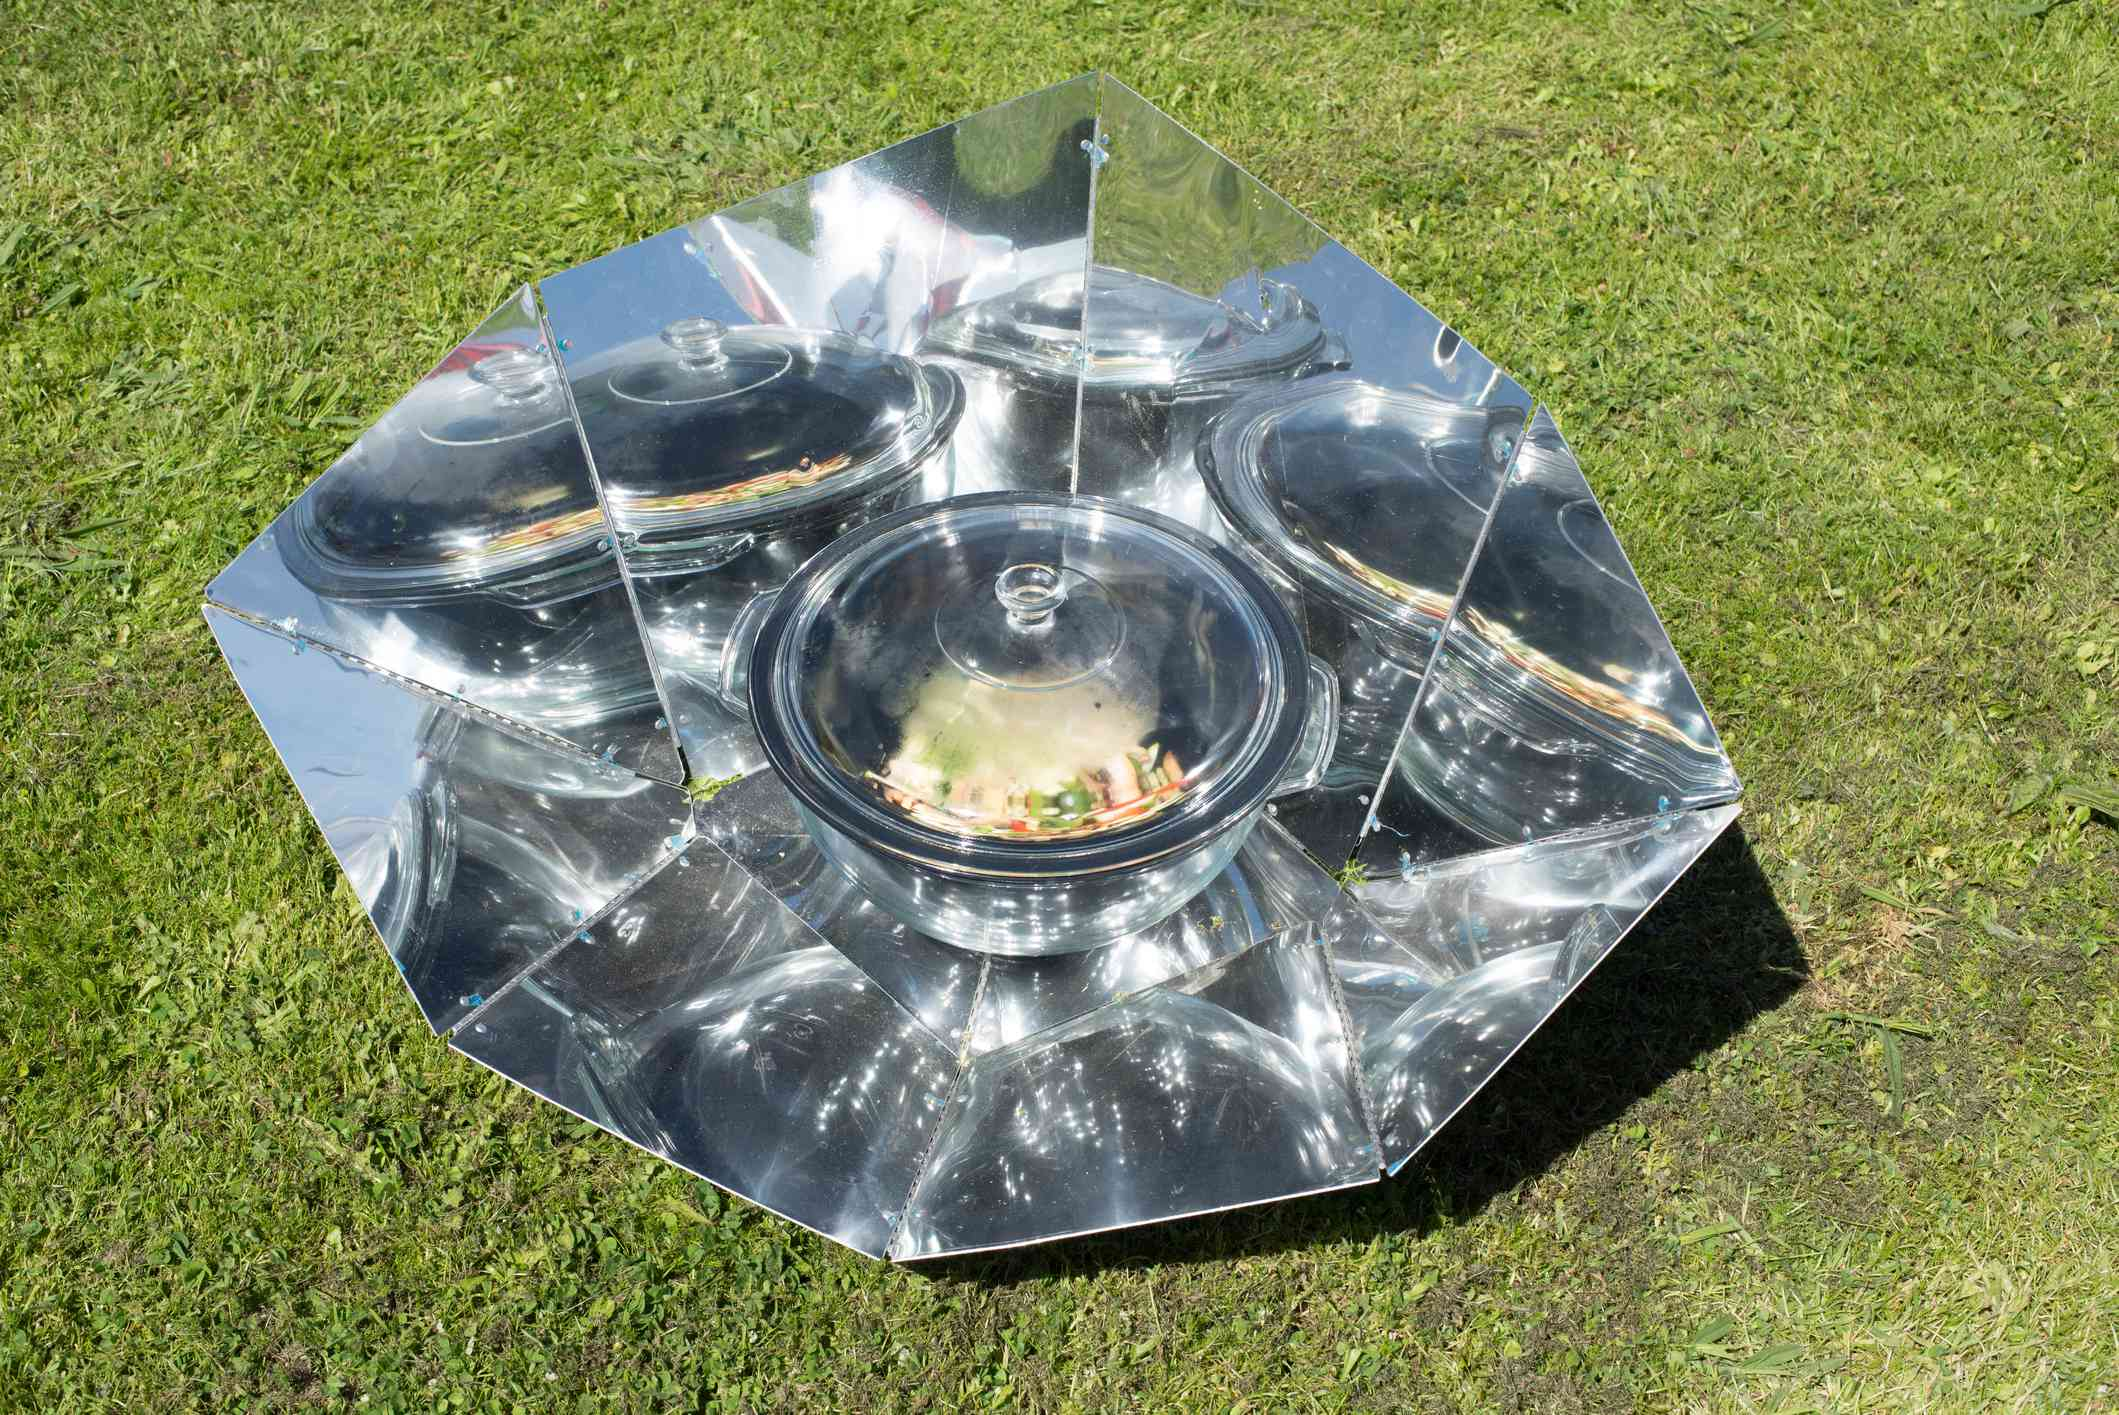 Cooking in a solar oven on the grass.